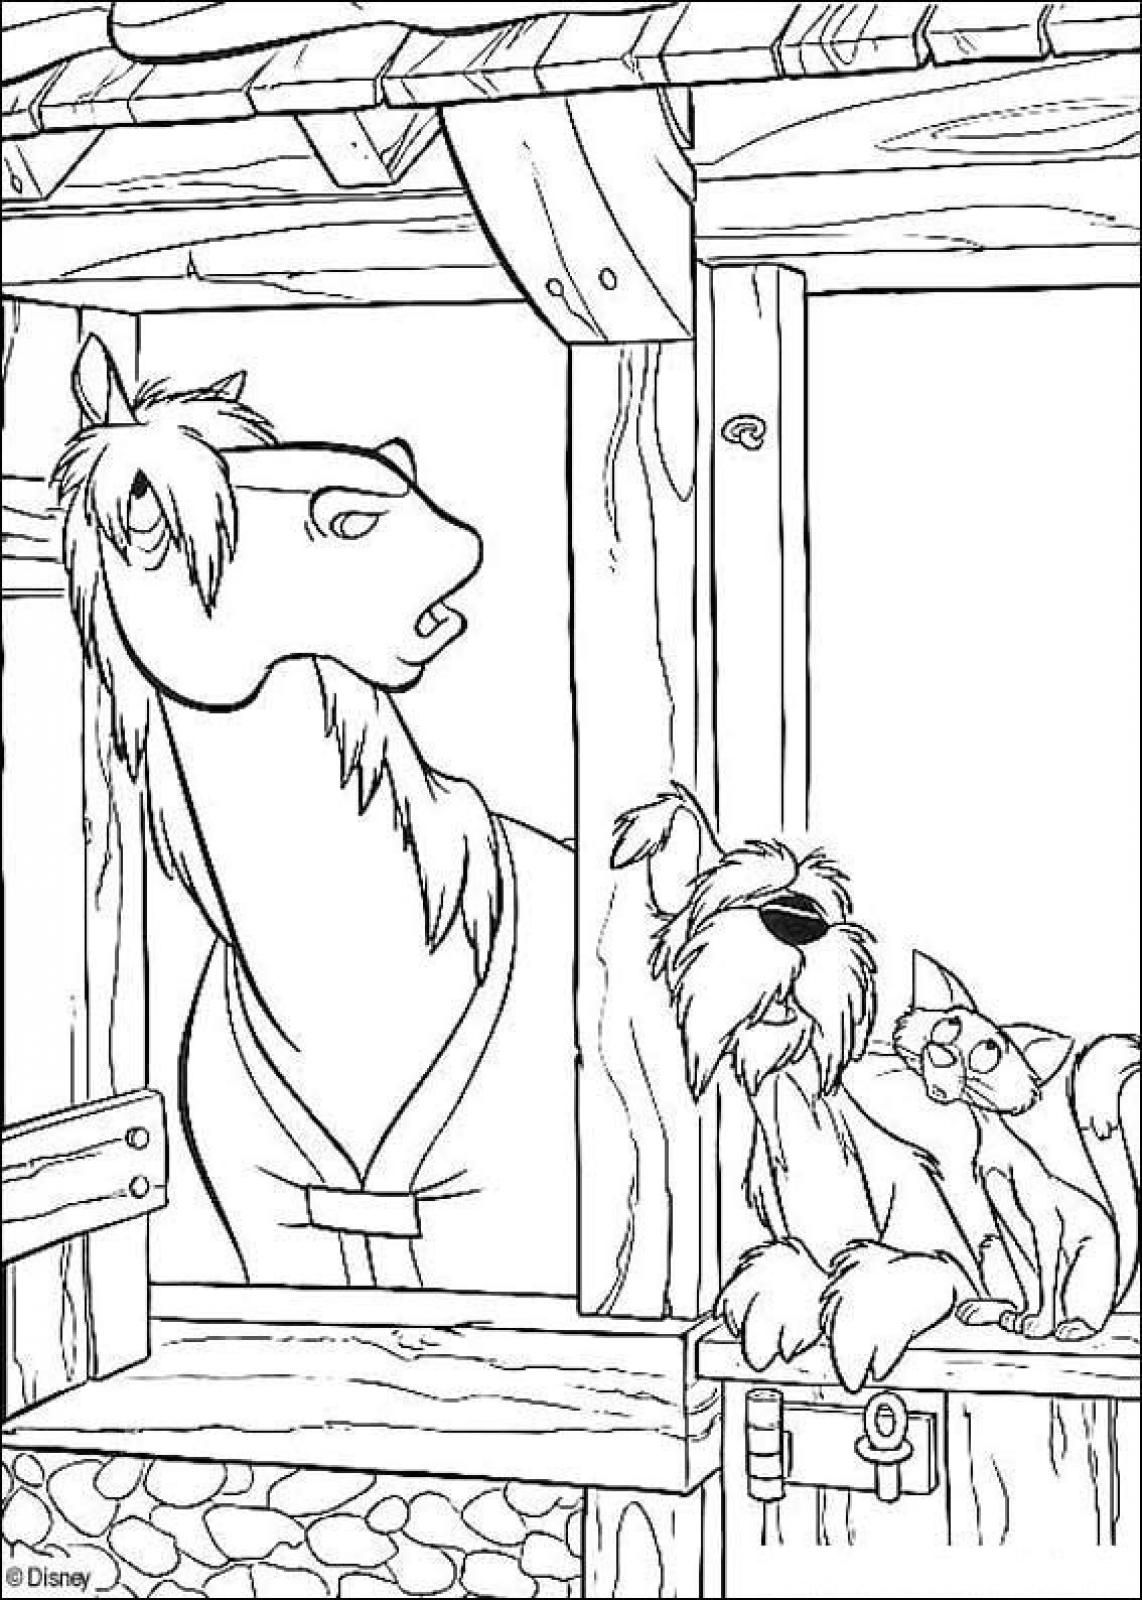 Dalmatians+Horse+Dog+And+Cat+Printable+Coloring+Pages | Free ...